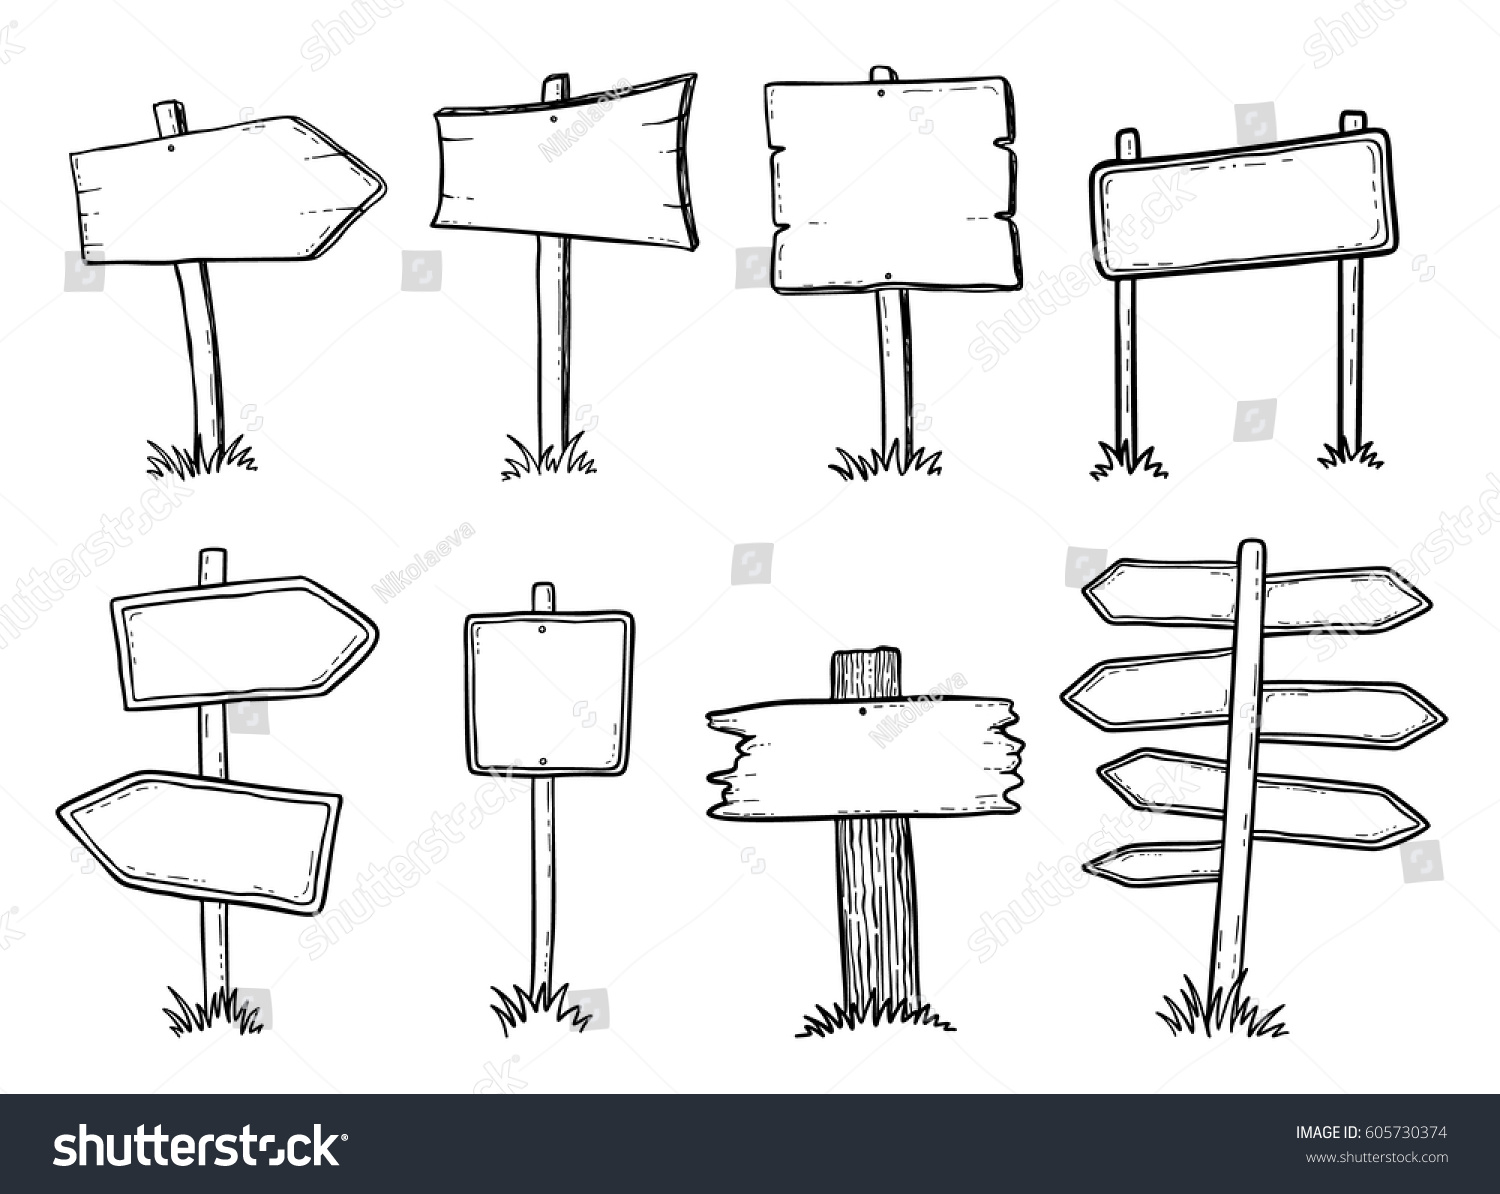 Hand drawn illustration of doodle wood road signs and arrows #605730374